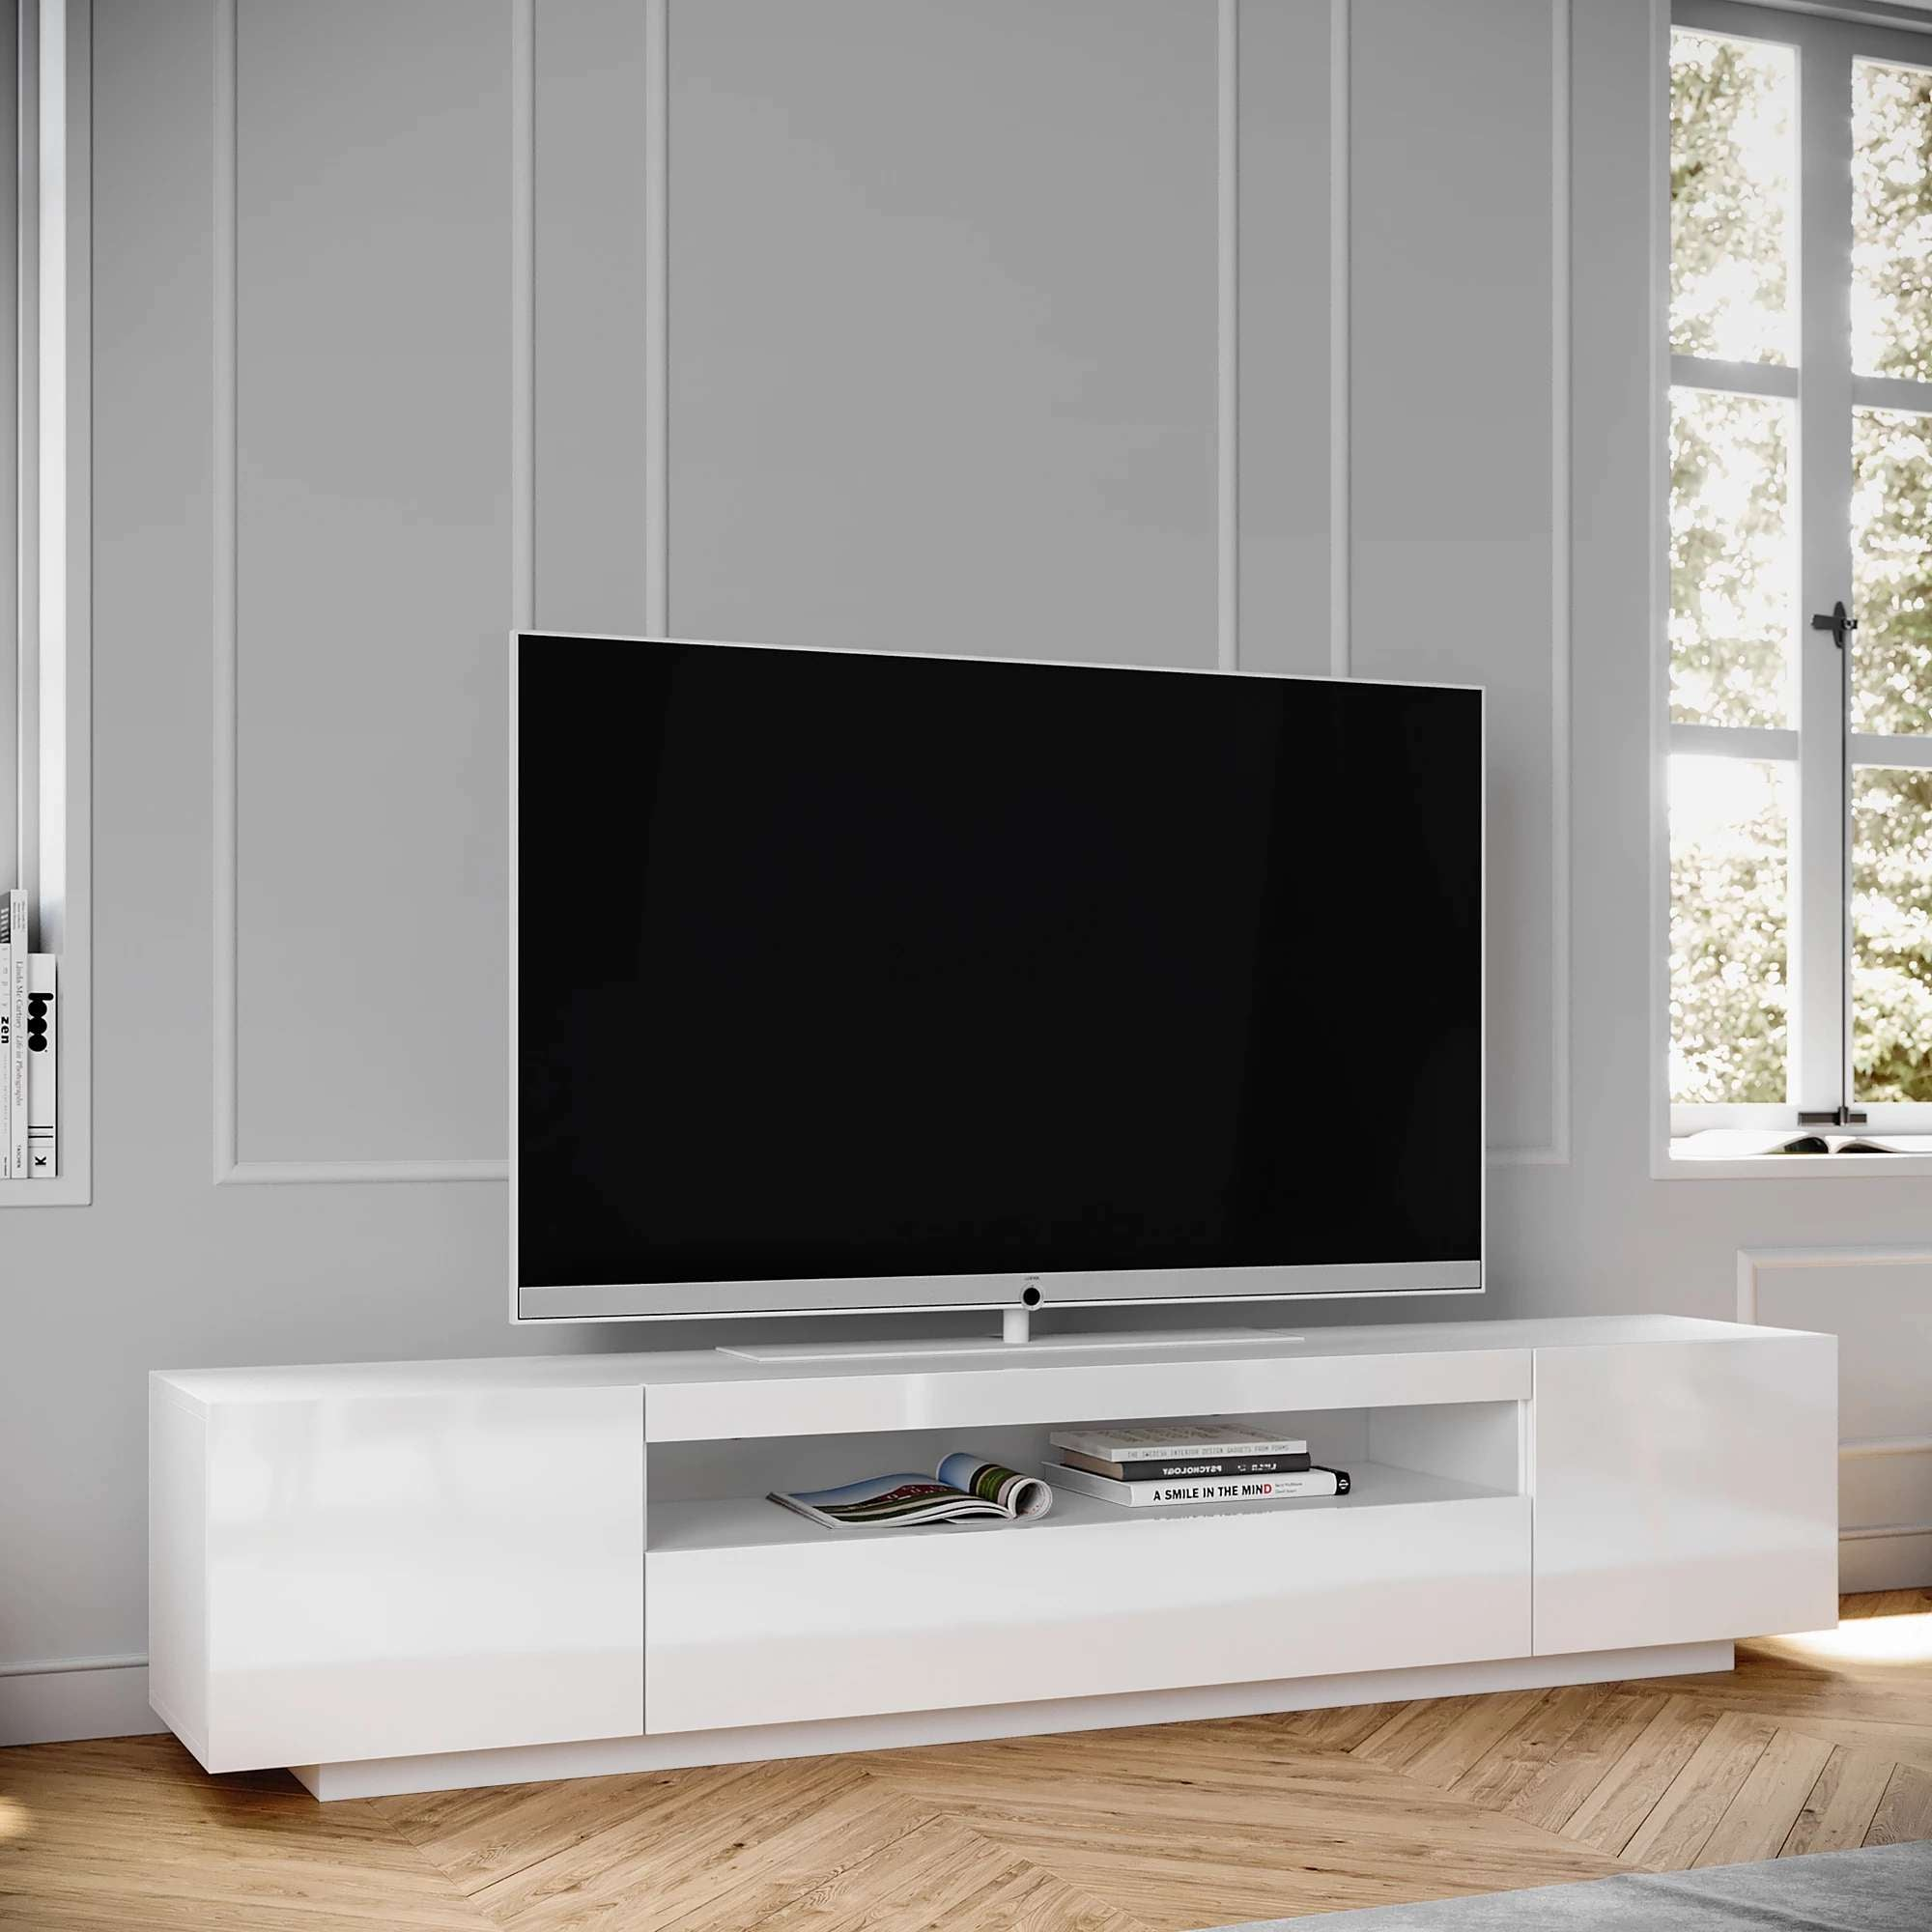 Samso Tv Stand White For Tvs Up To 75 Loft Design Company